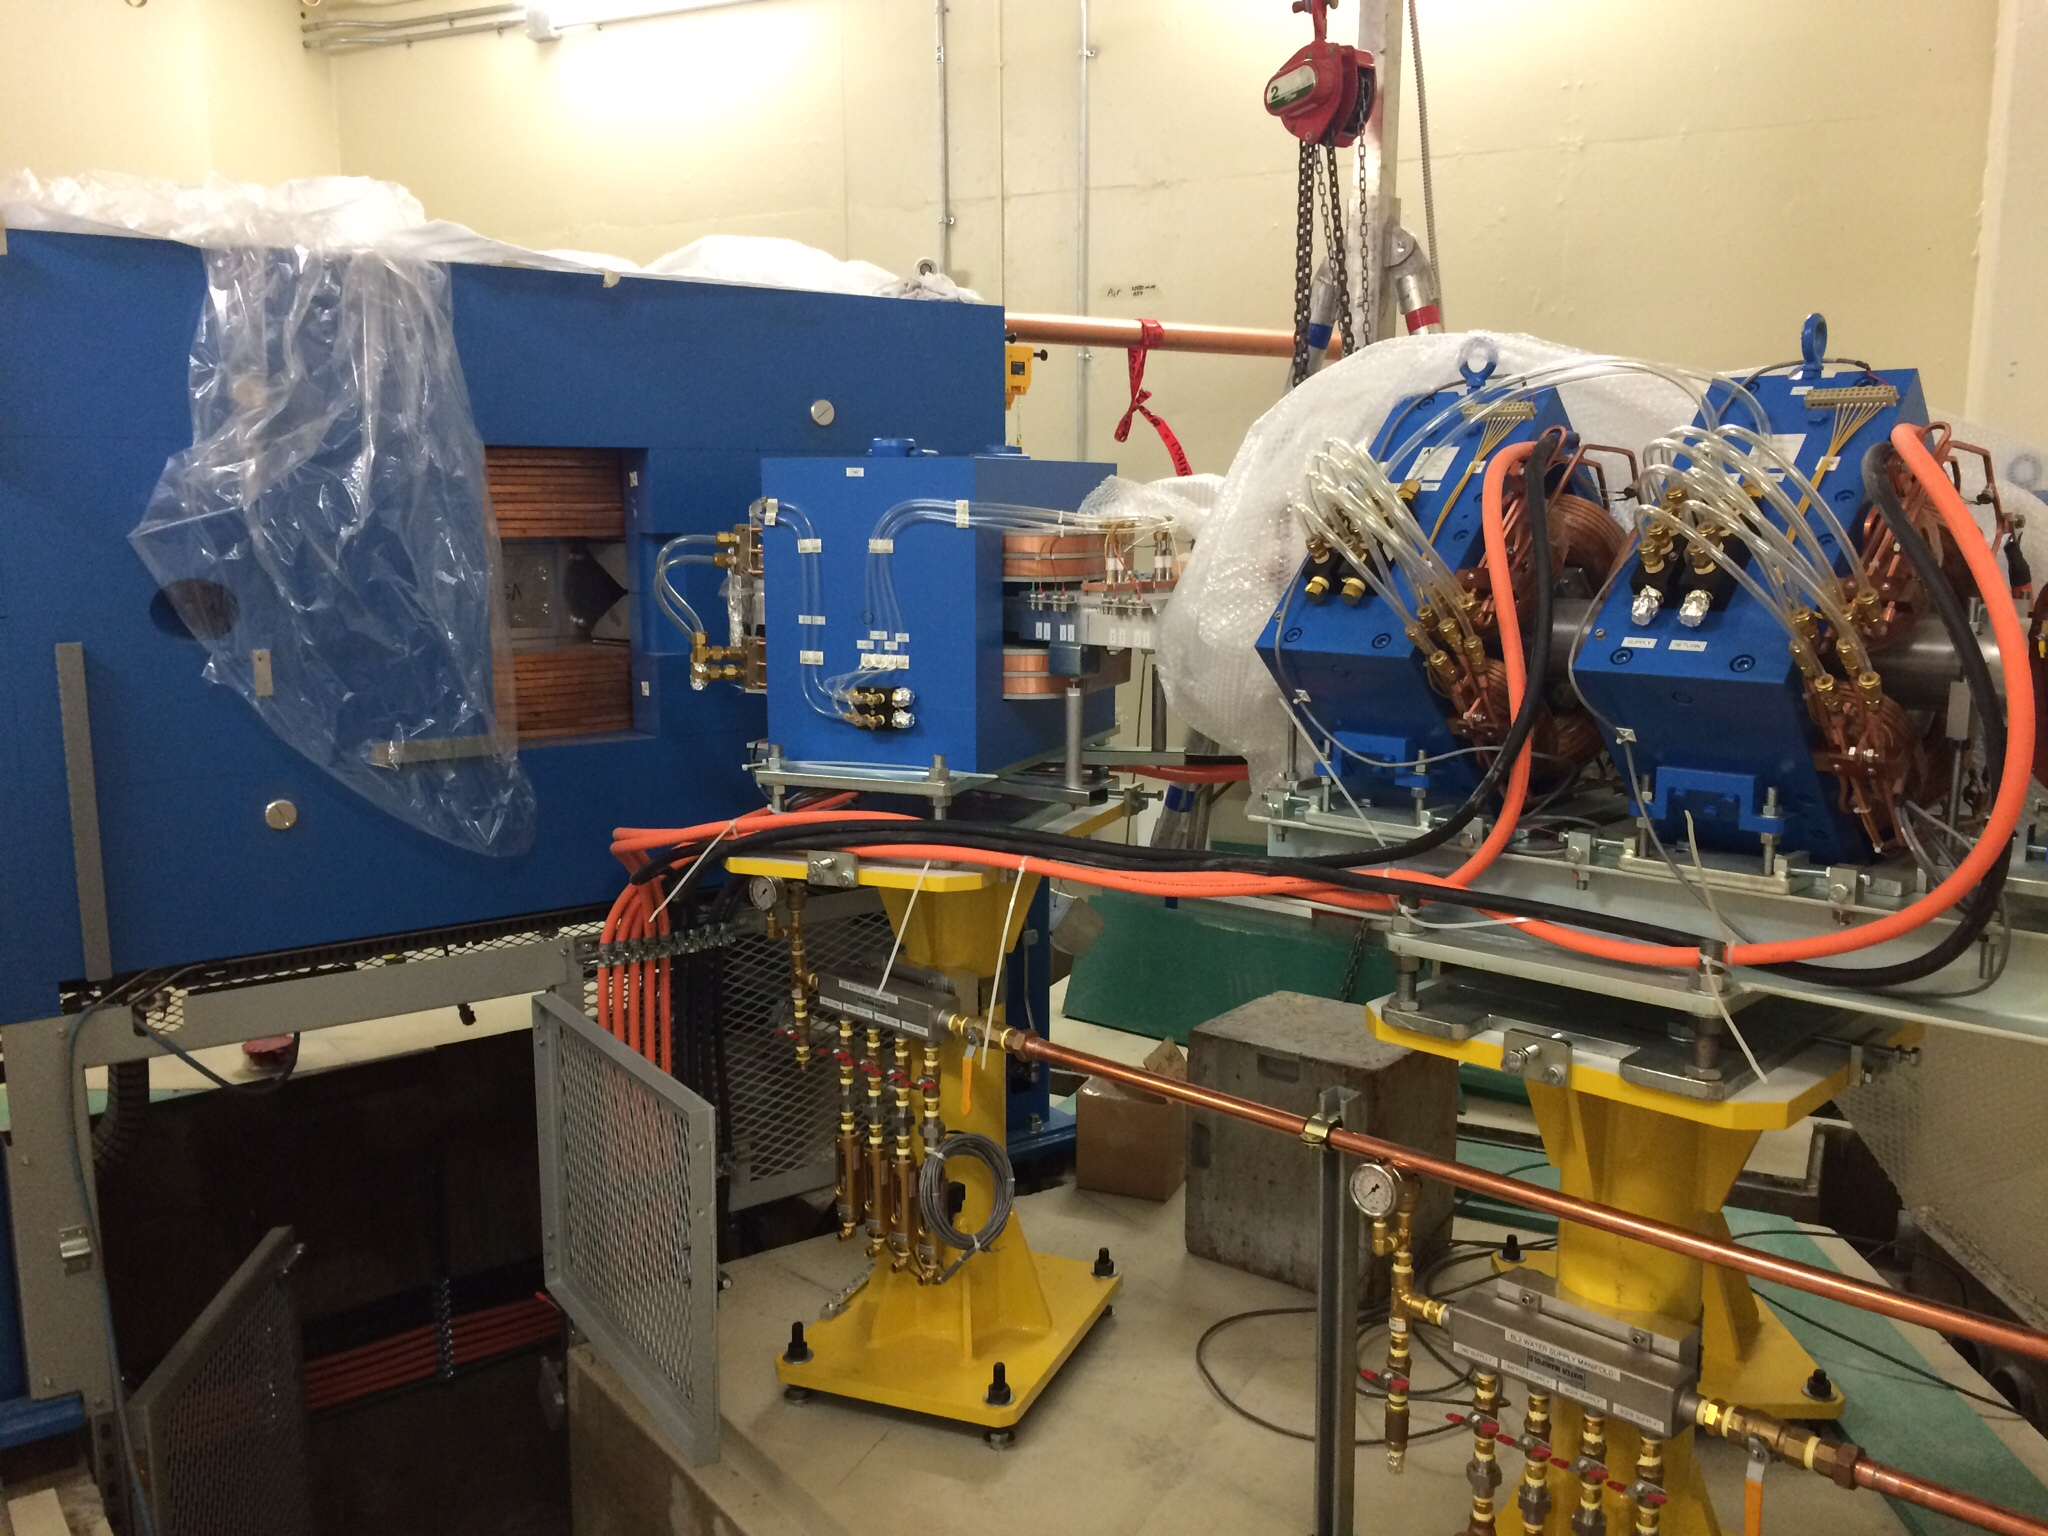 Unpacking the cyclotron